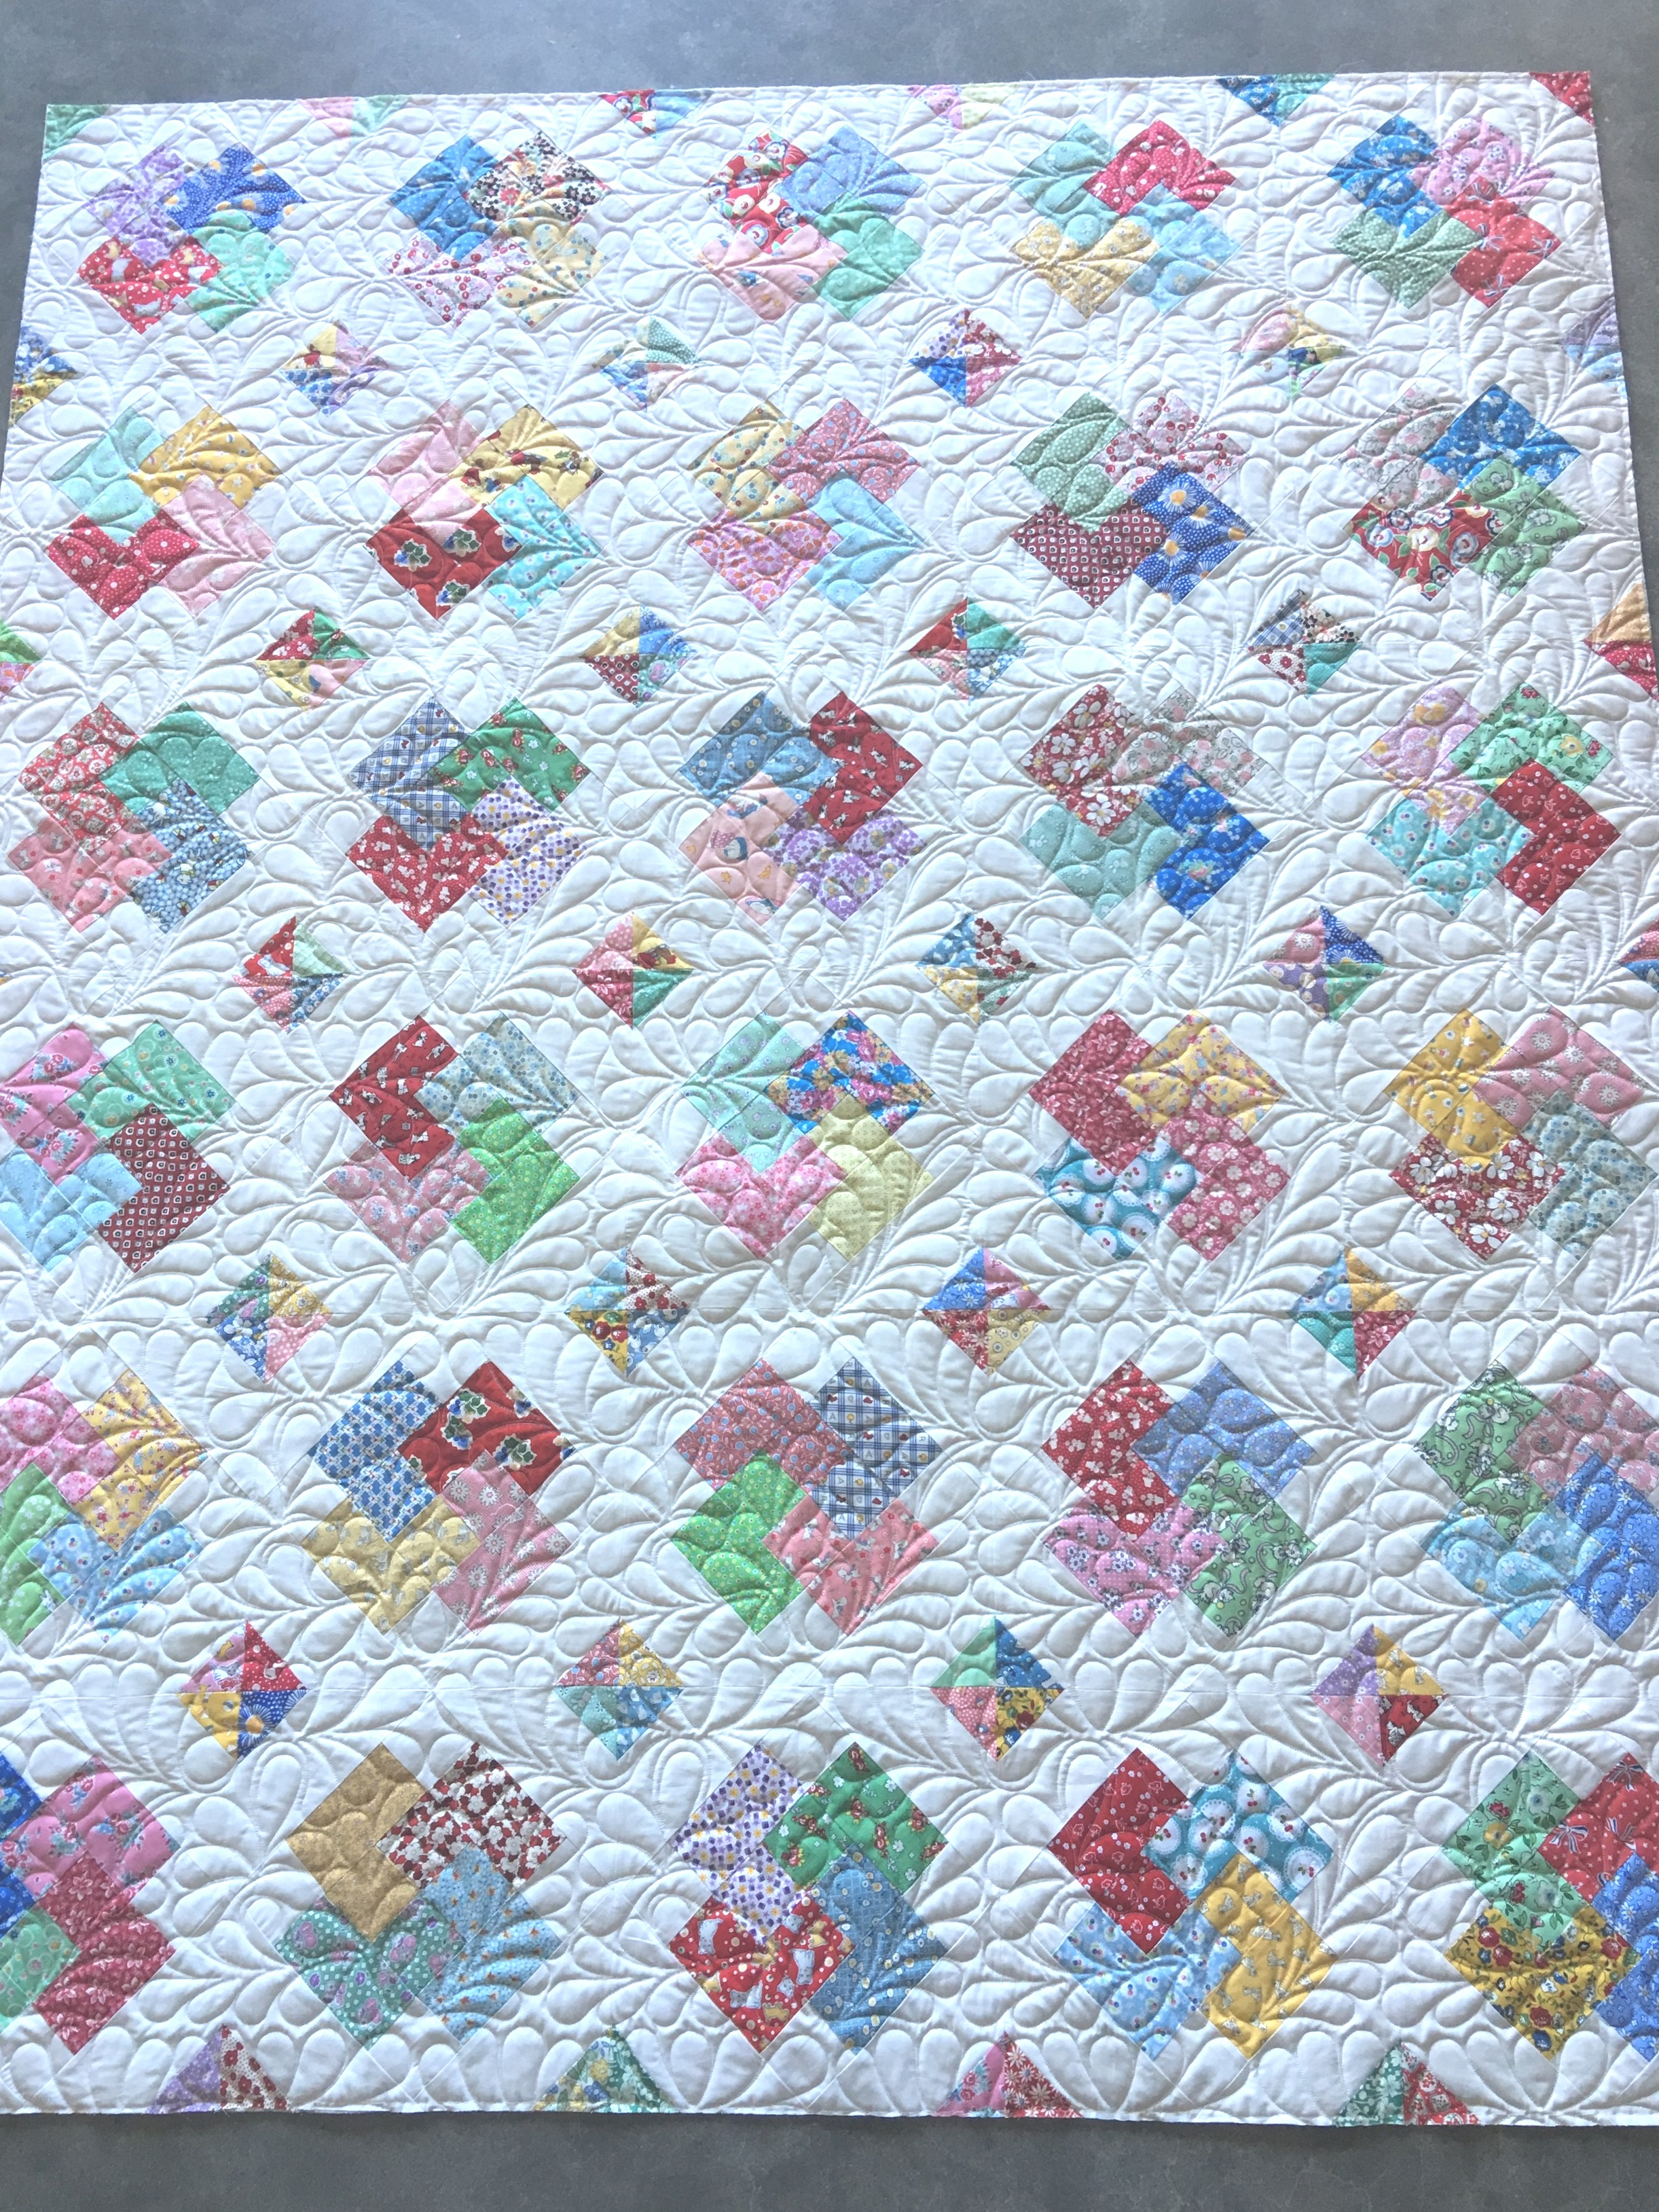 Quilting Design: Feathers